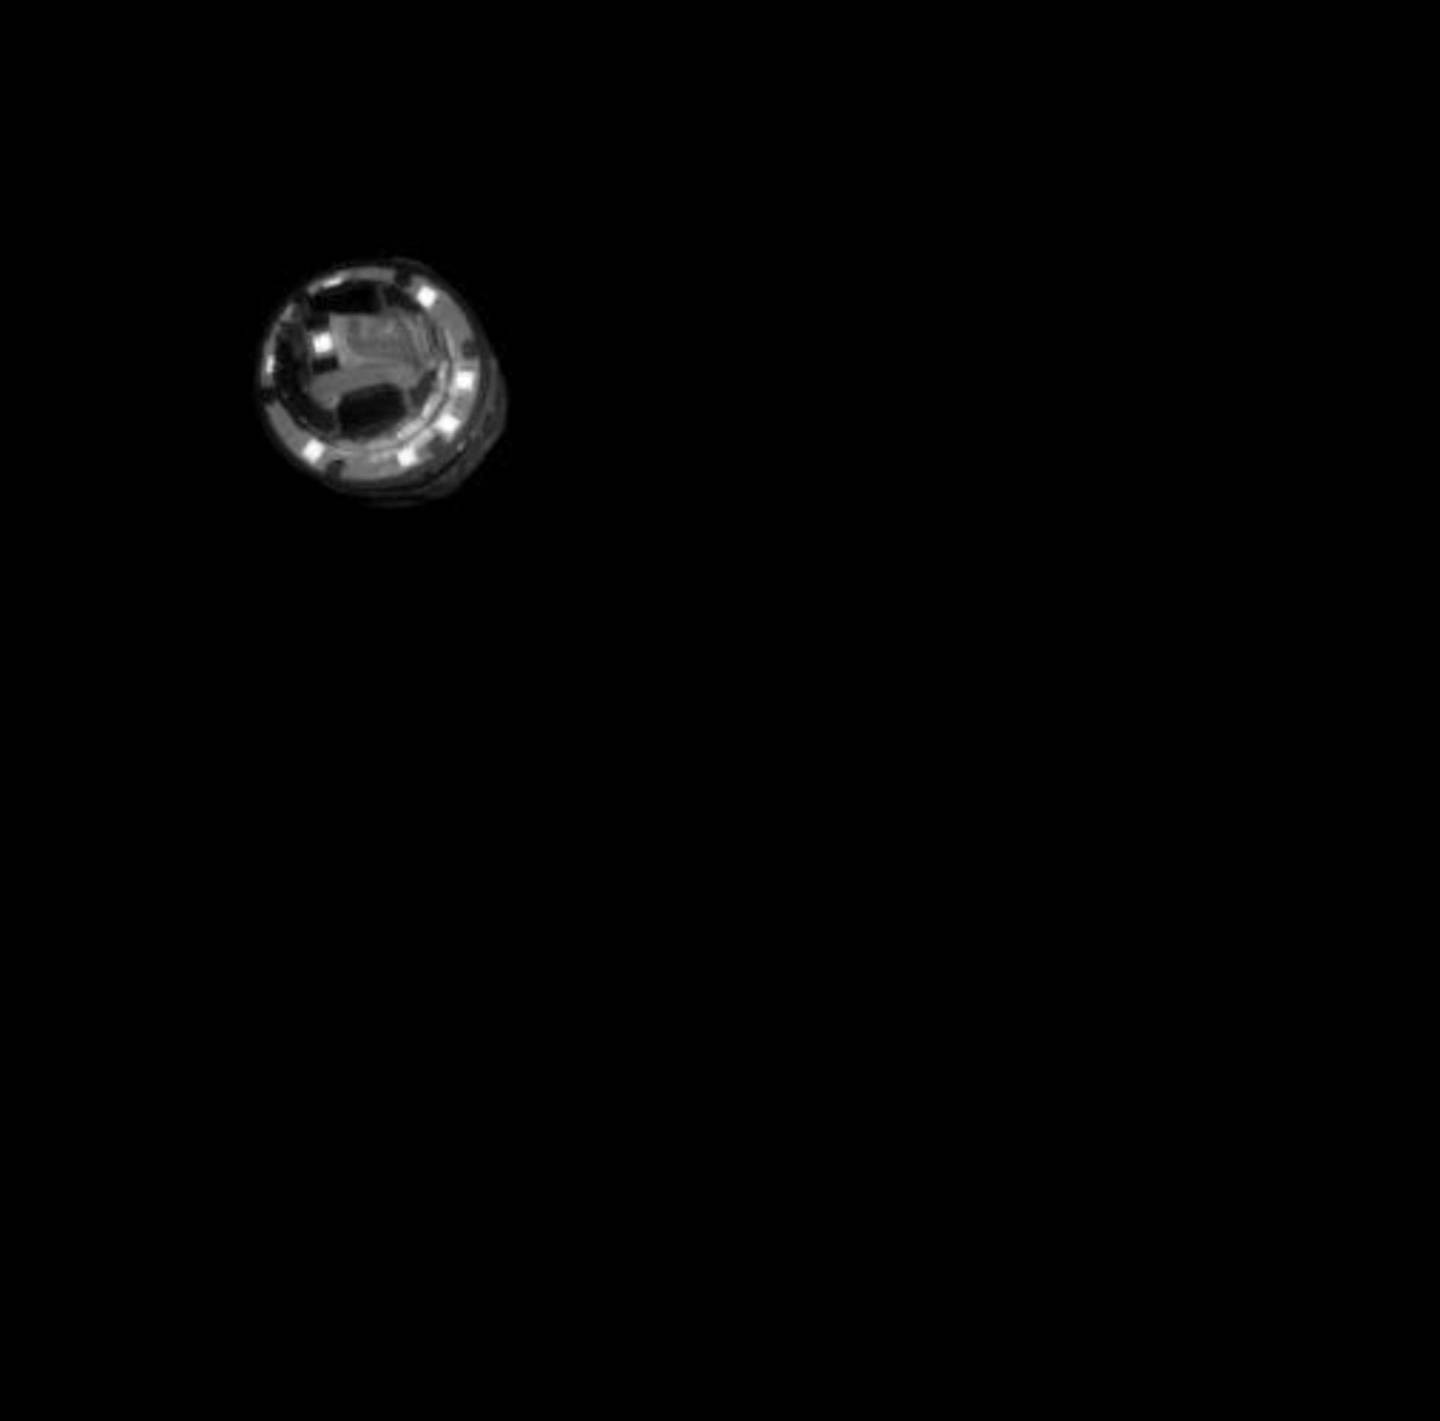 """This image released by the Japan Aerospace Exploration Agency (JAXA) shows an explosive dropped from Hayabusa2 spacecraft to make a crater on the asteroid Ryugu Friday, April 5, 2019. Japan's space agency JAXA said its Hayabusa2 spacecraft successfully dropped the """"small carry-on impactor"""" made of copper onto the asteroid and collect its underground samples to find possible clues to the origin of the solar system. (JAXA via AP)"""